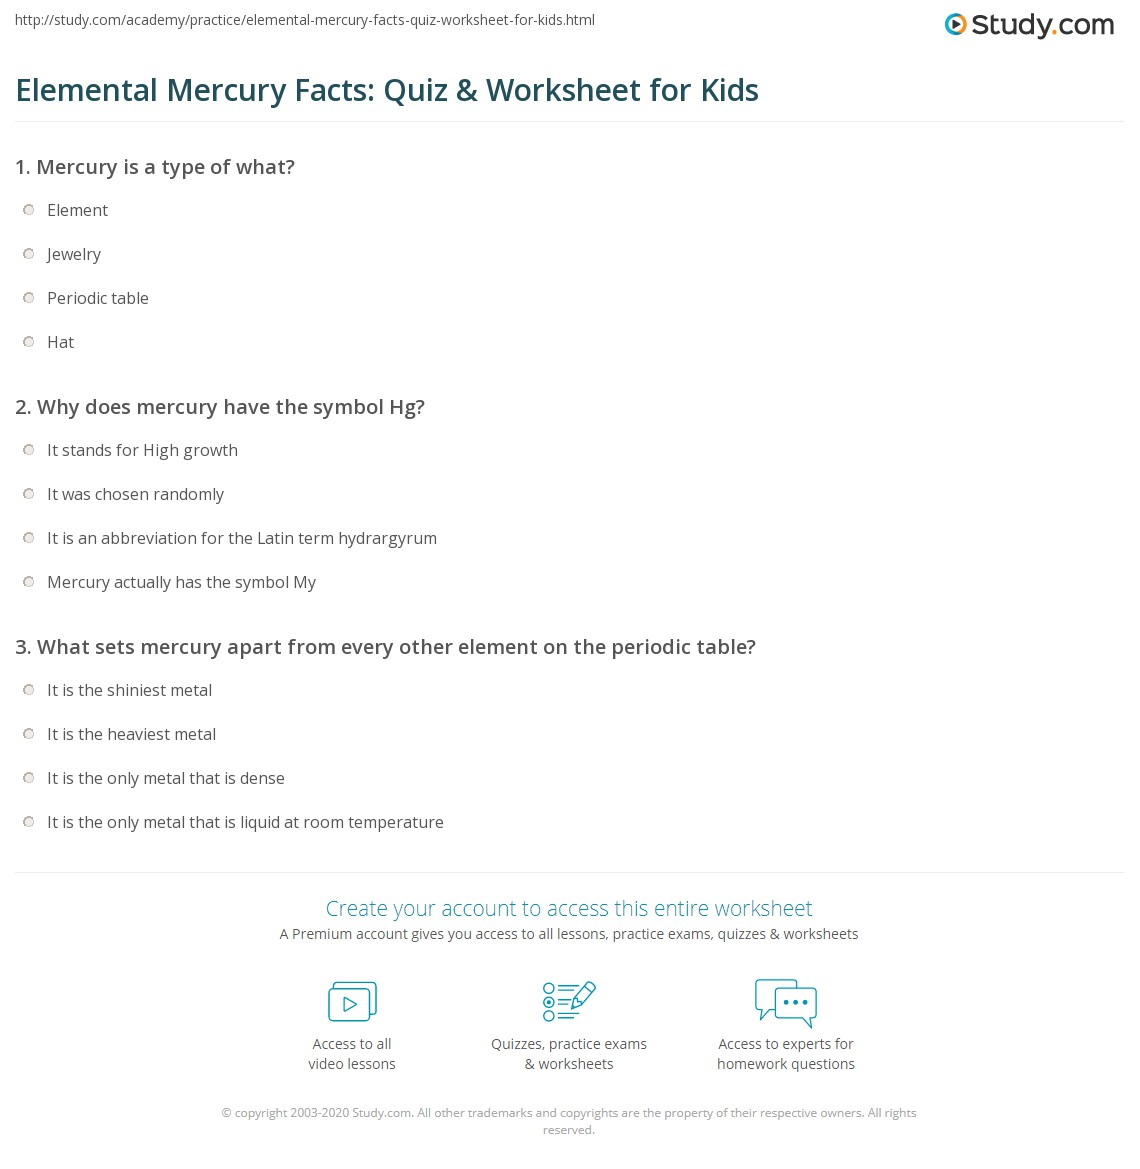 Mercury periodic table fun facts brokeasshome elemental mercury facts quiz worksheet for kids study com gamestrikefo Image collections